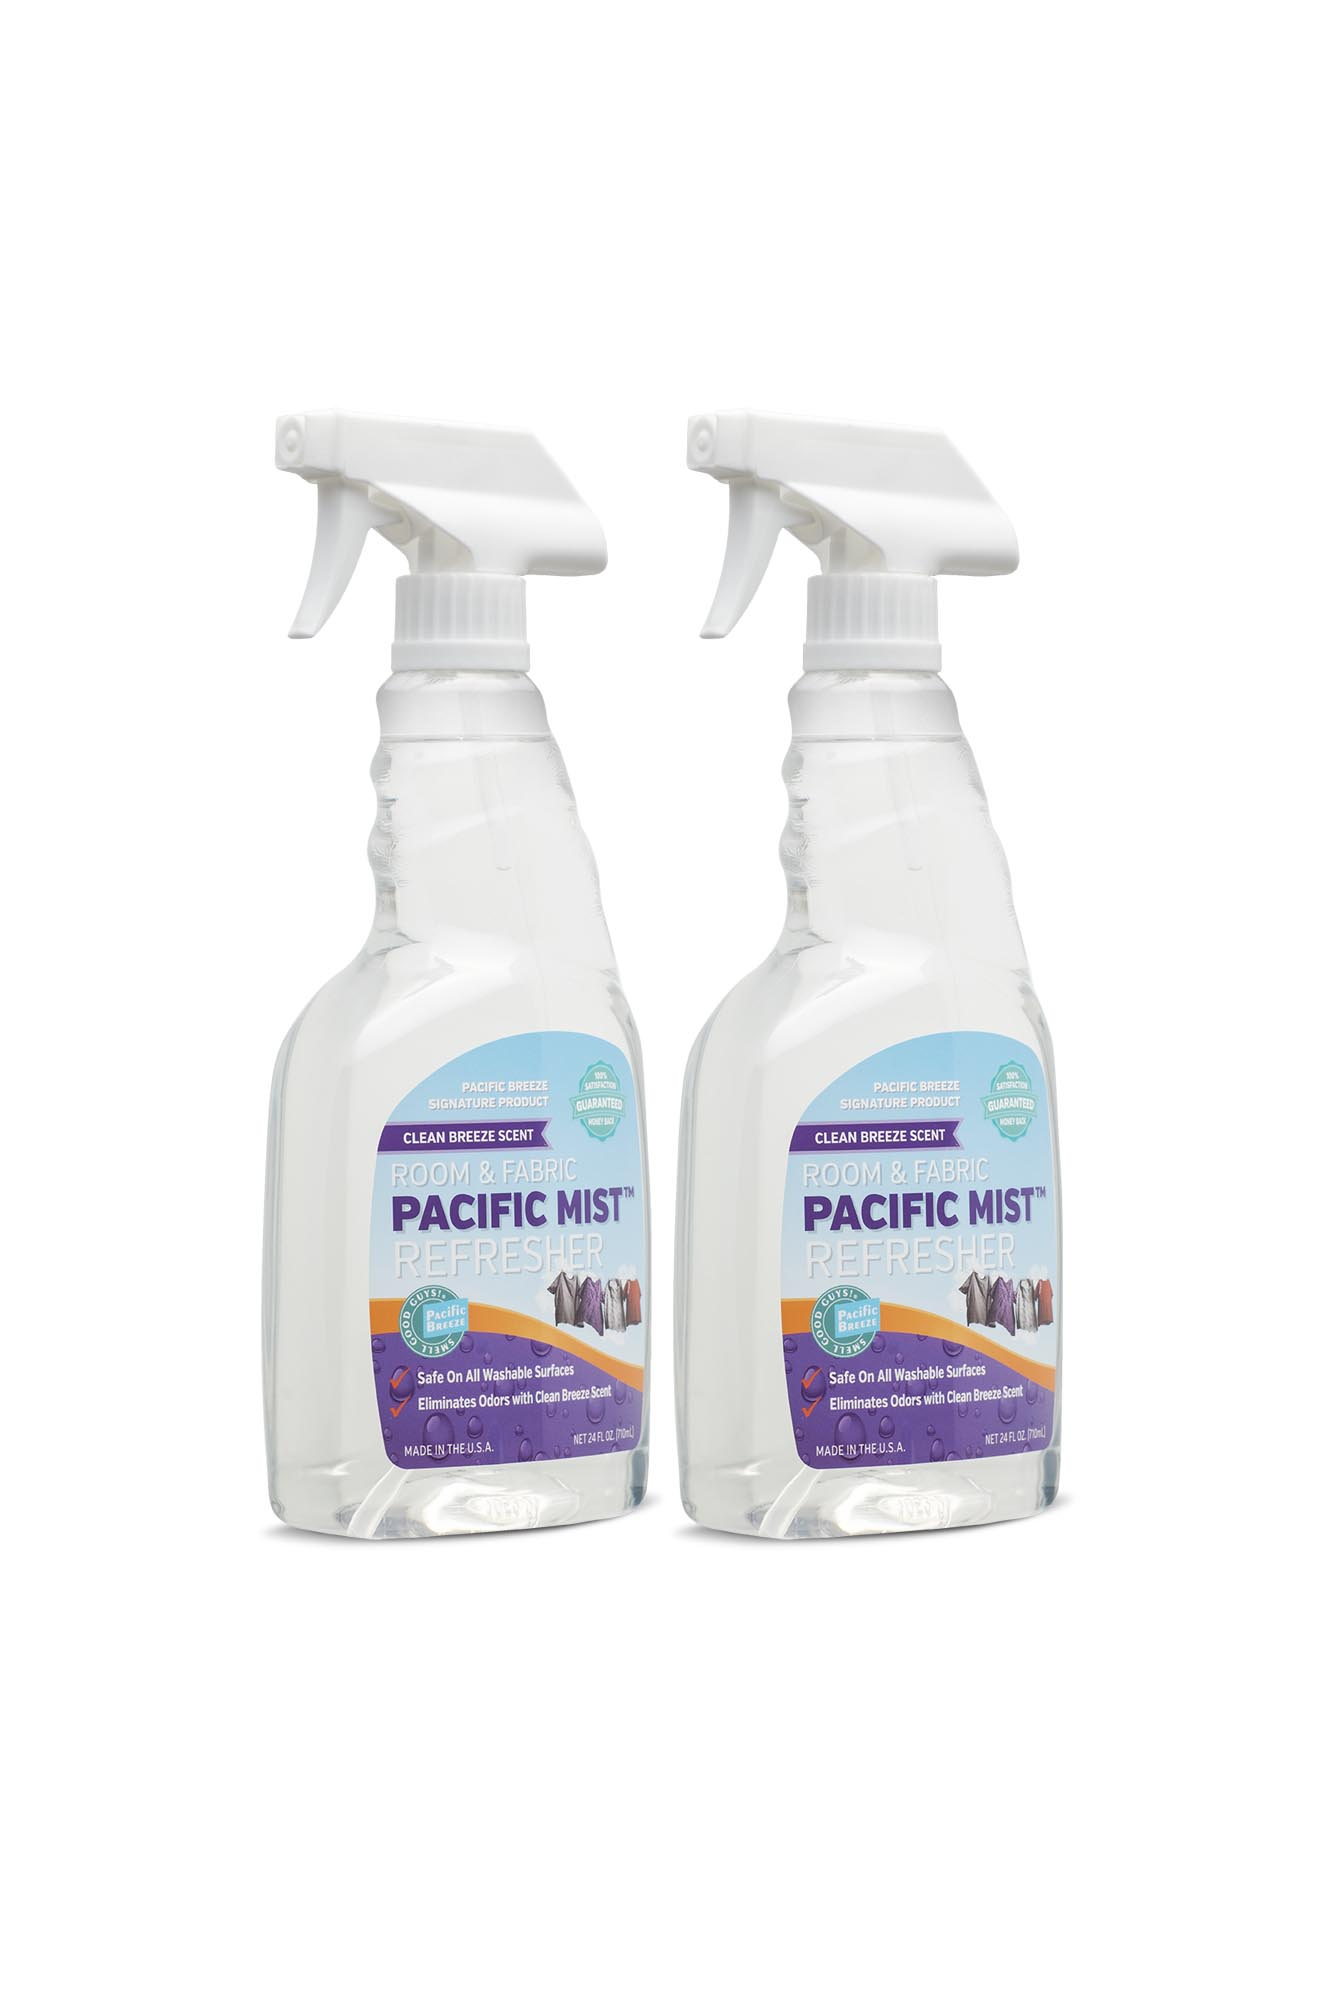 Pacific Mist™ Clean Breeze Room & Fabric Refresher - 24oz. (2-pack)